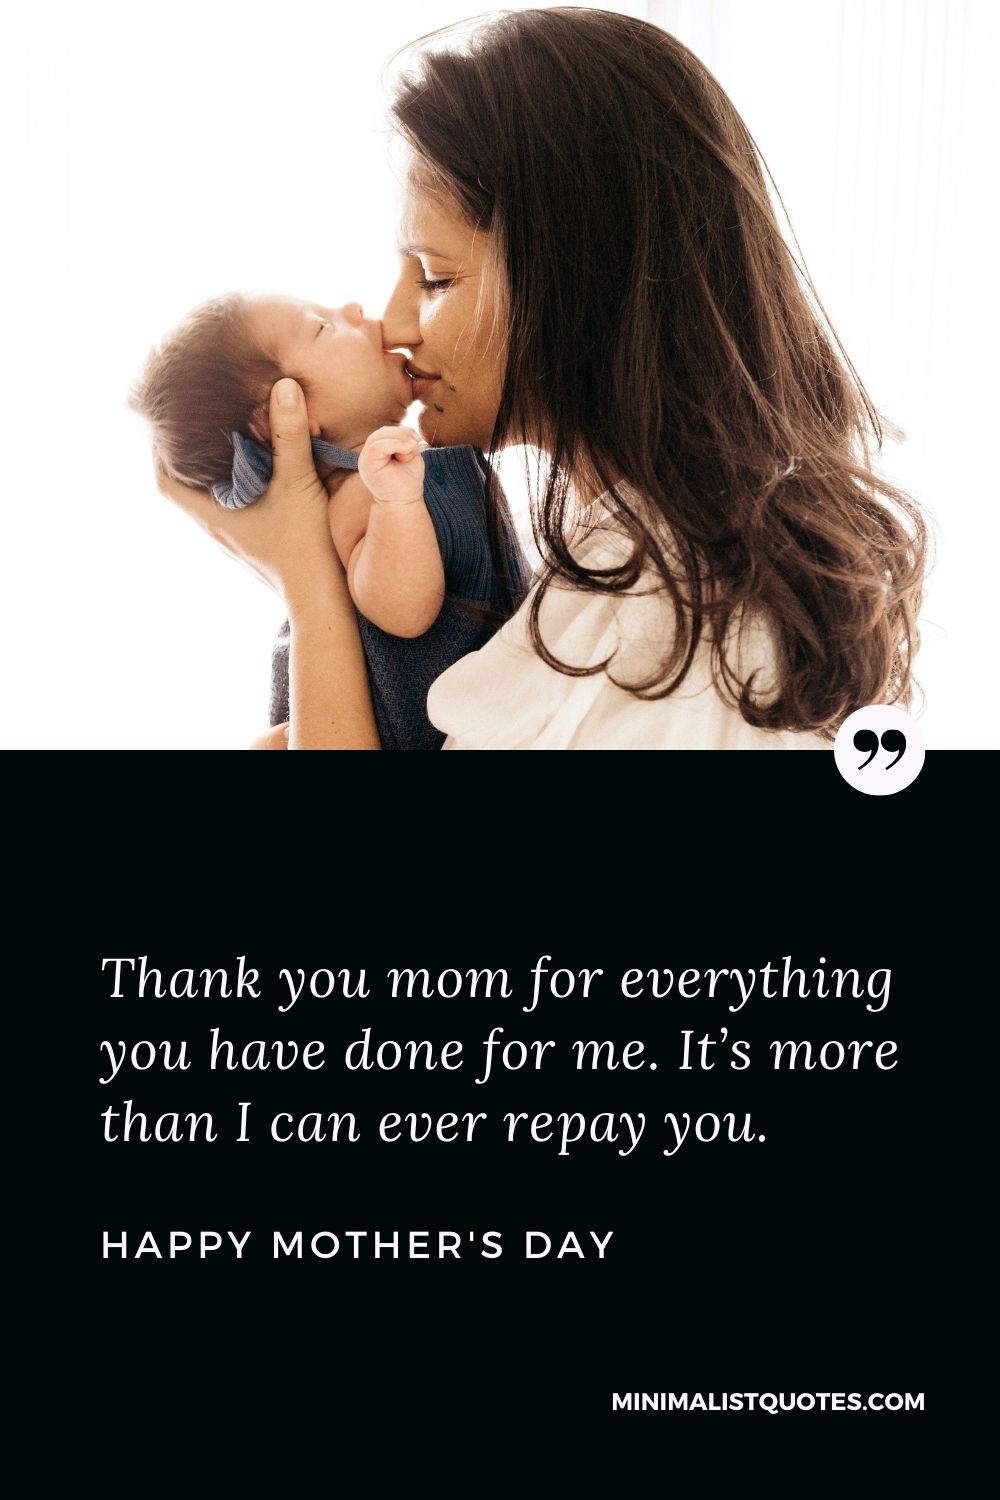 Mother's Day wish, message & quote with HD image: Thank you mom for everything you havedone for me. It's more than I can ever repay you. Happy Mother's Day!